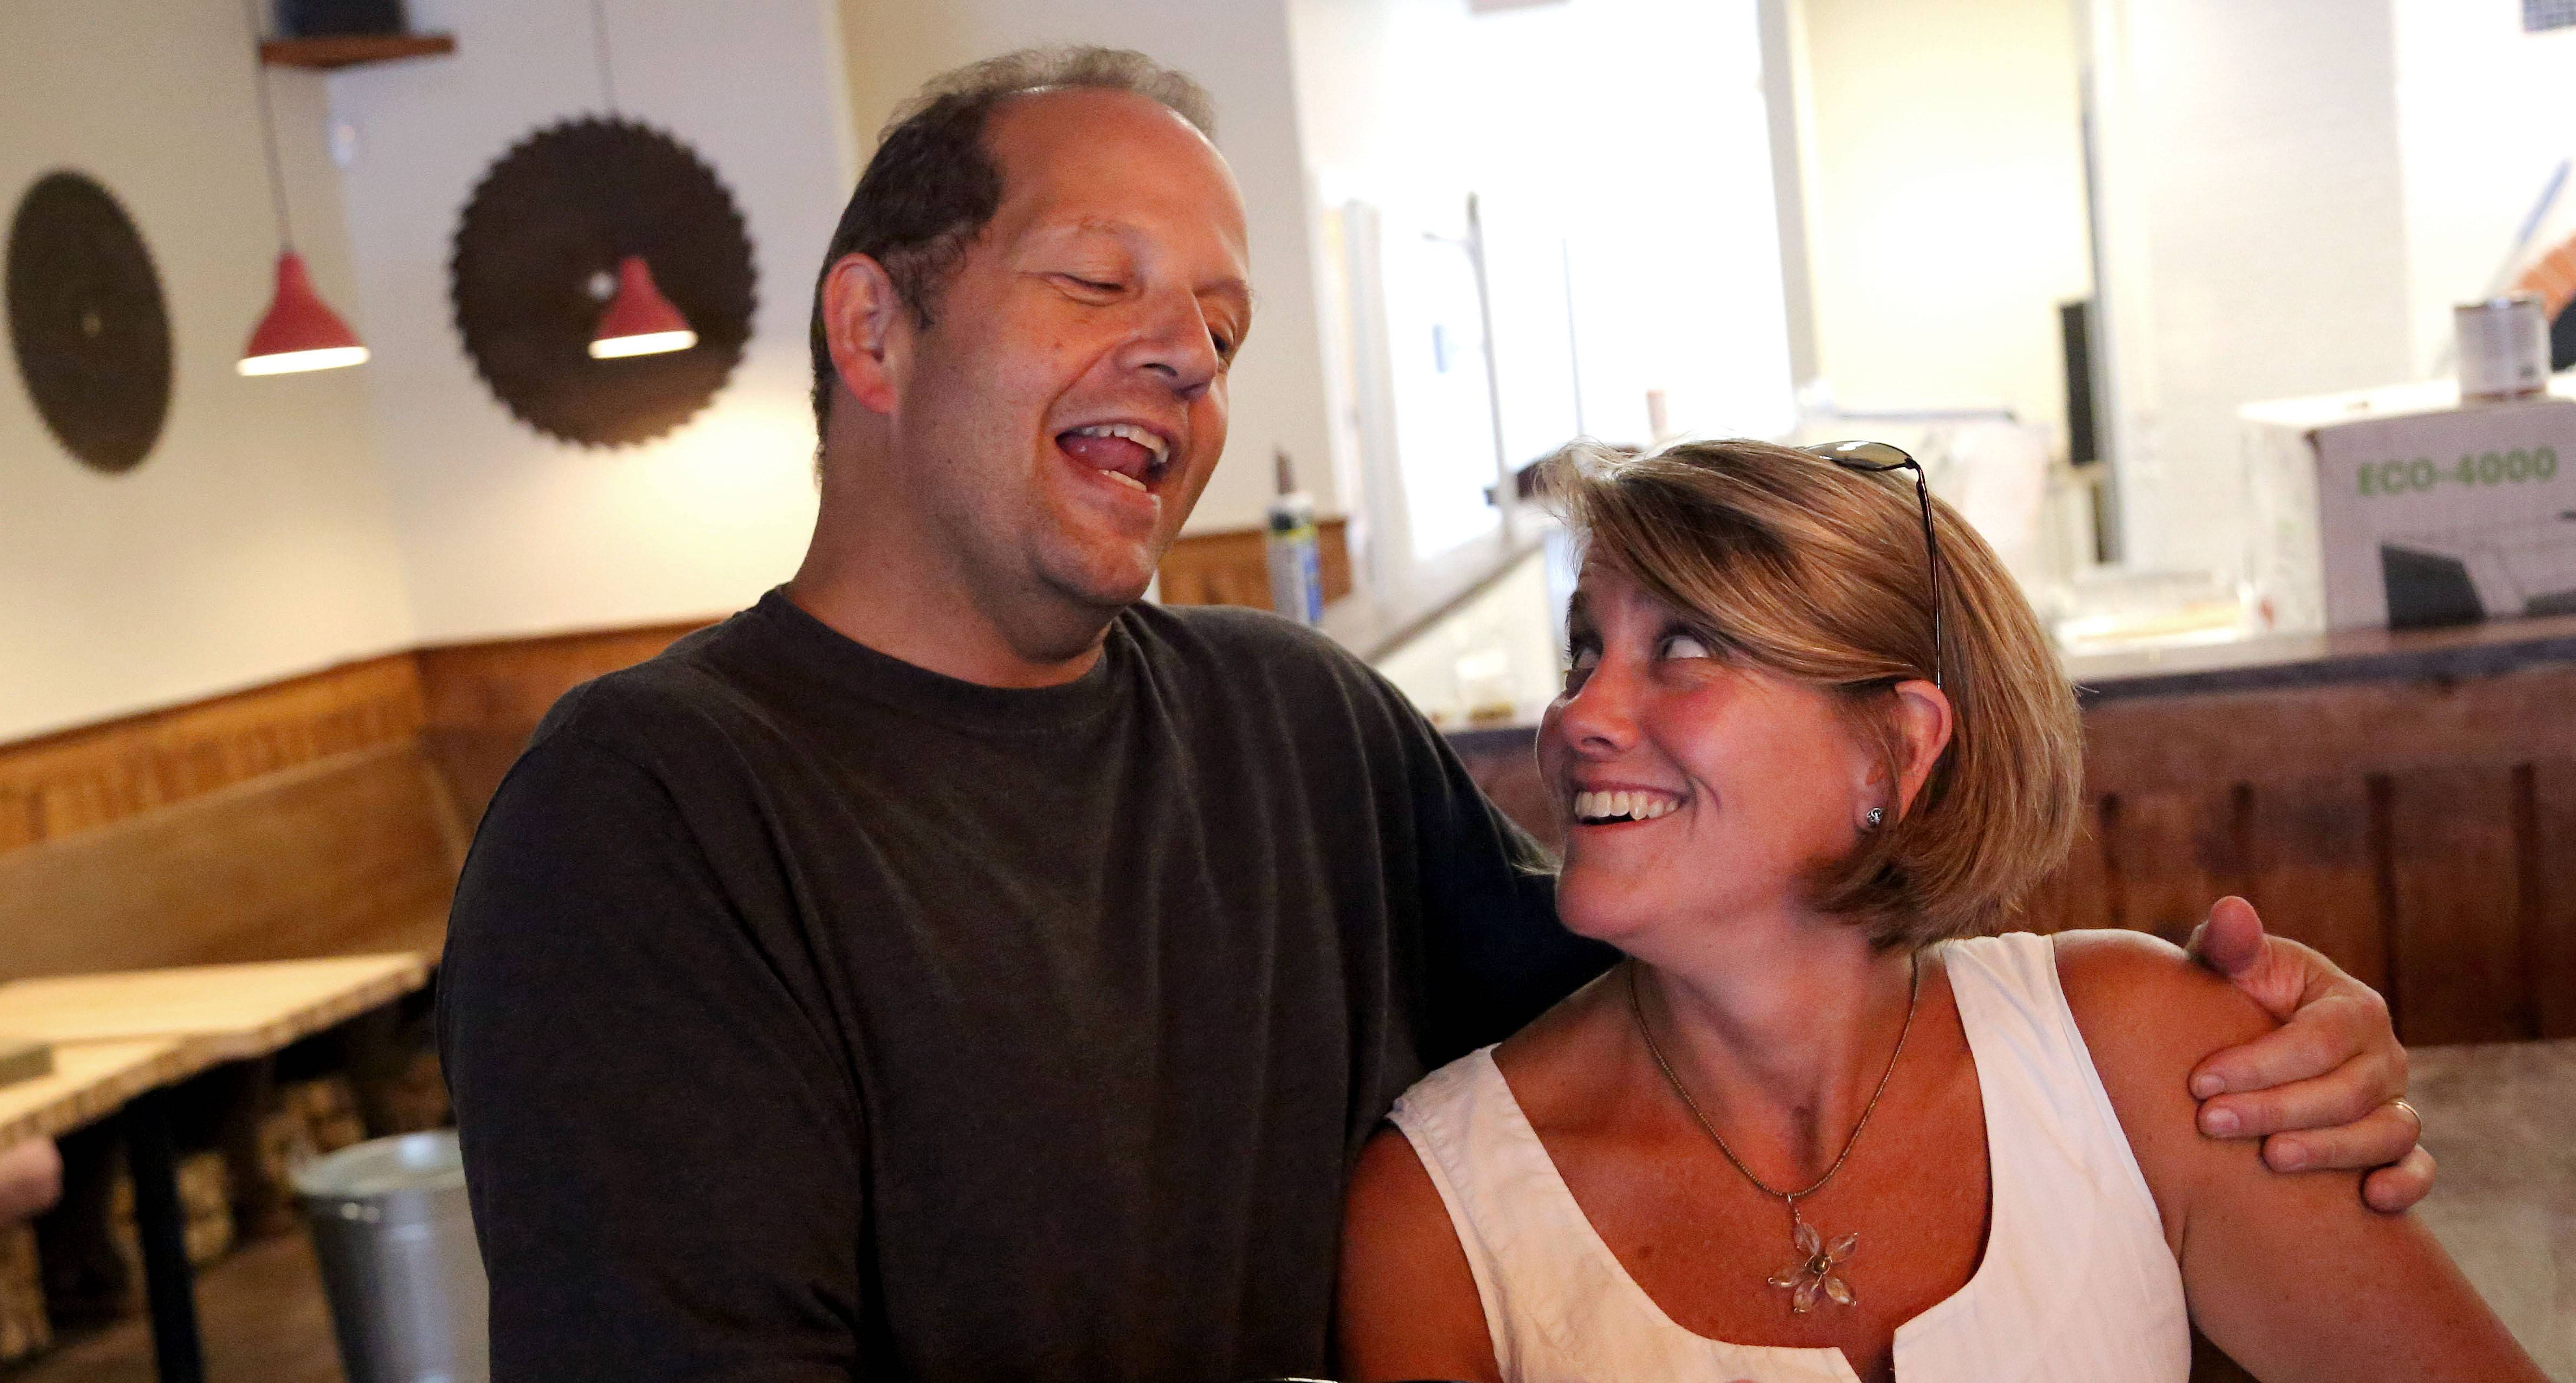 John Durning sings to his wife, Susie, a common occurrence at their Pizzeria DeVille in Libertyville.